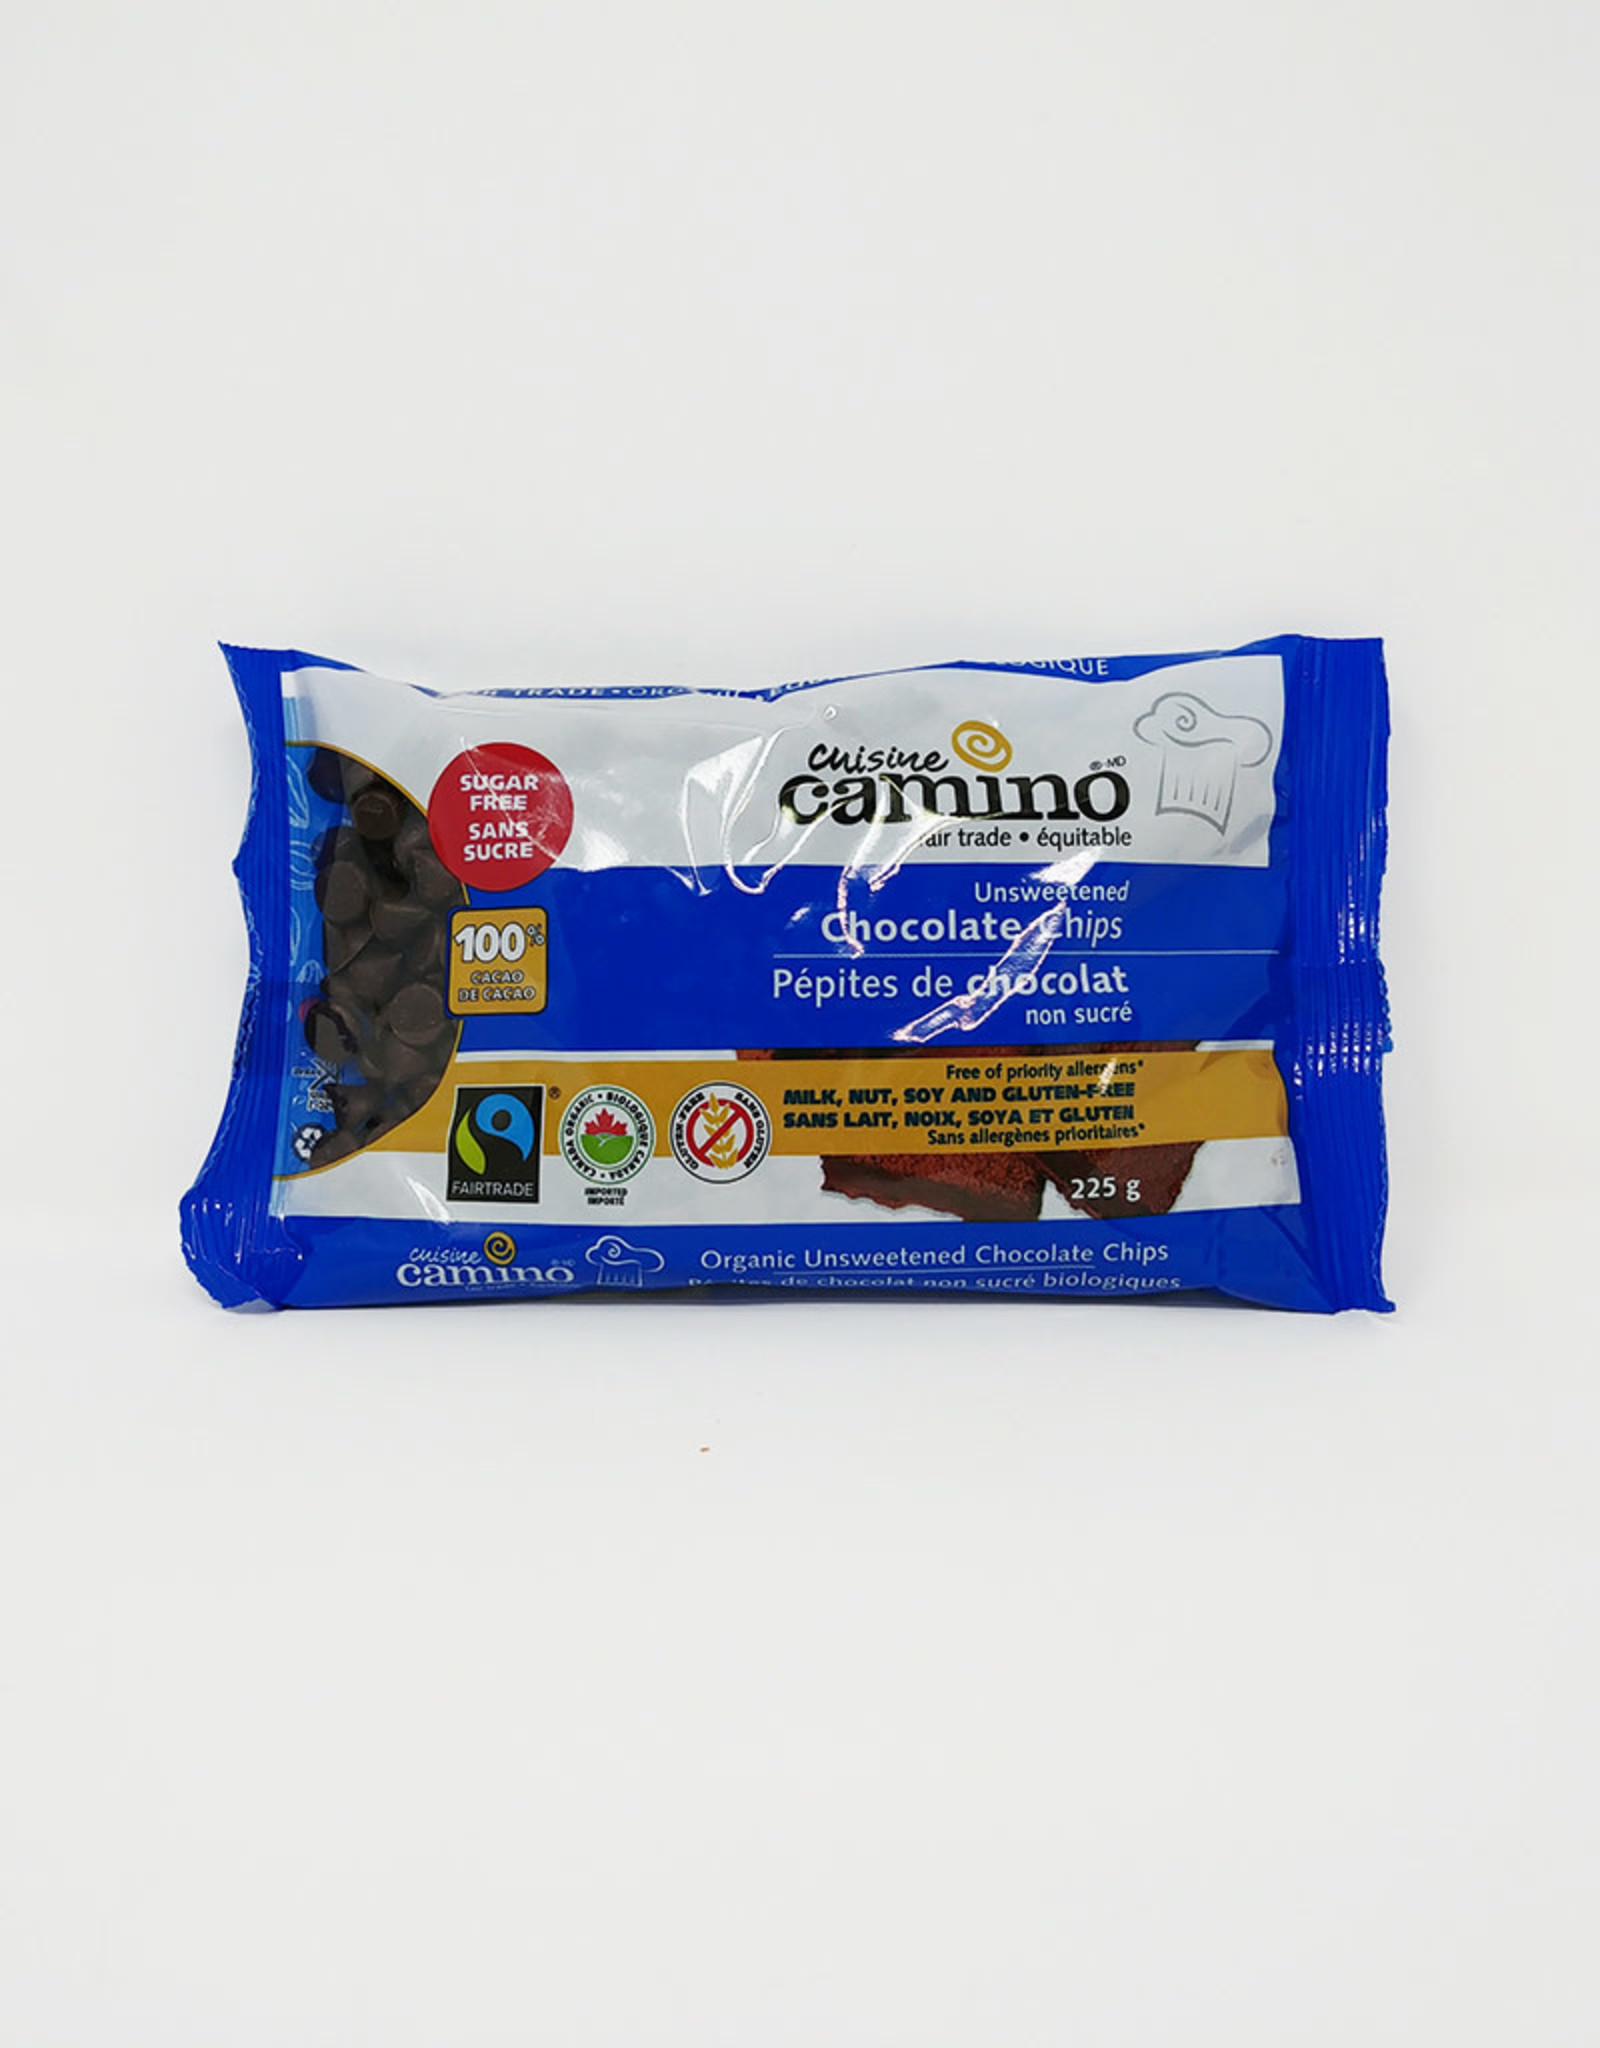 Camino Camino - Unsweetened Chocolate Chips (225g)